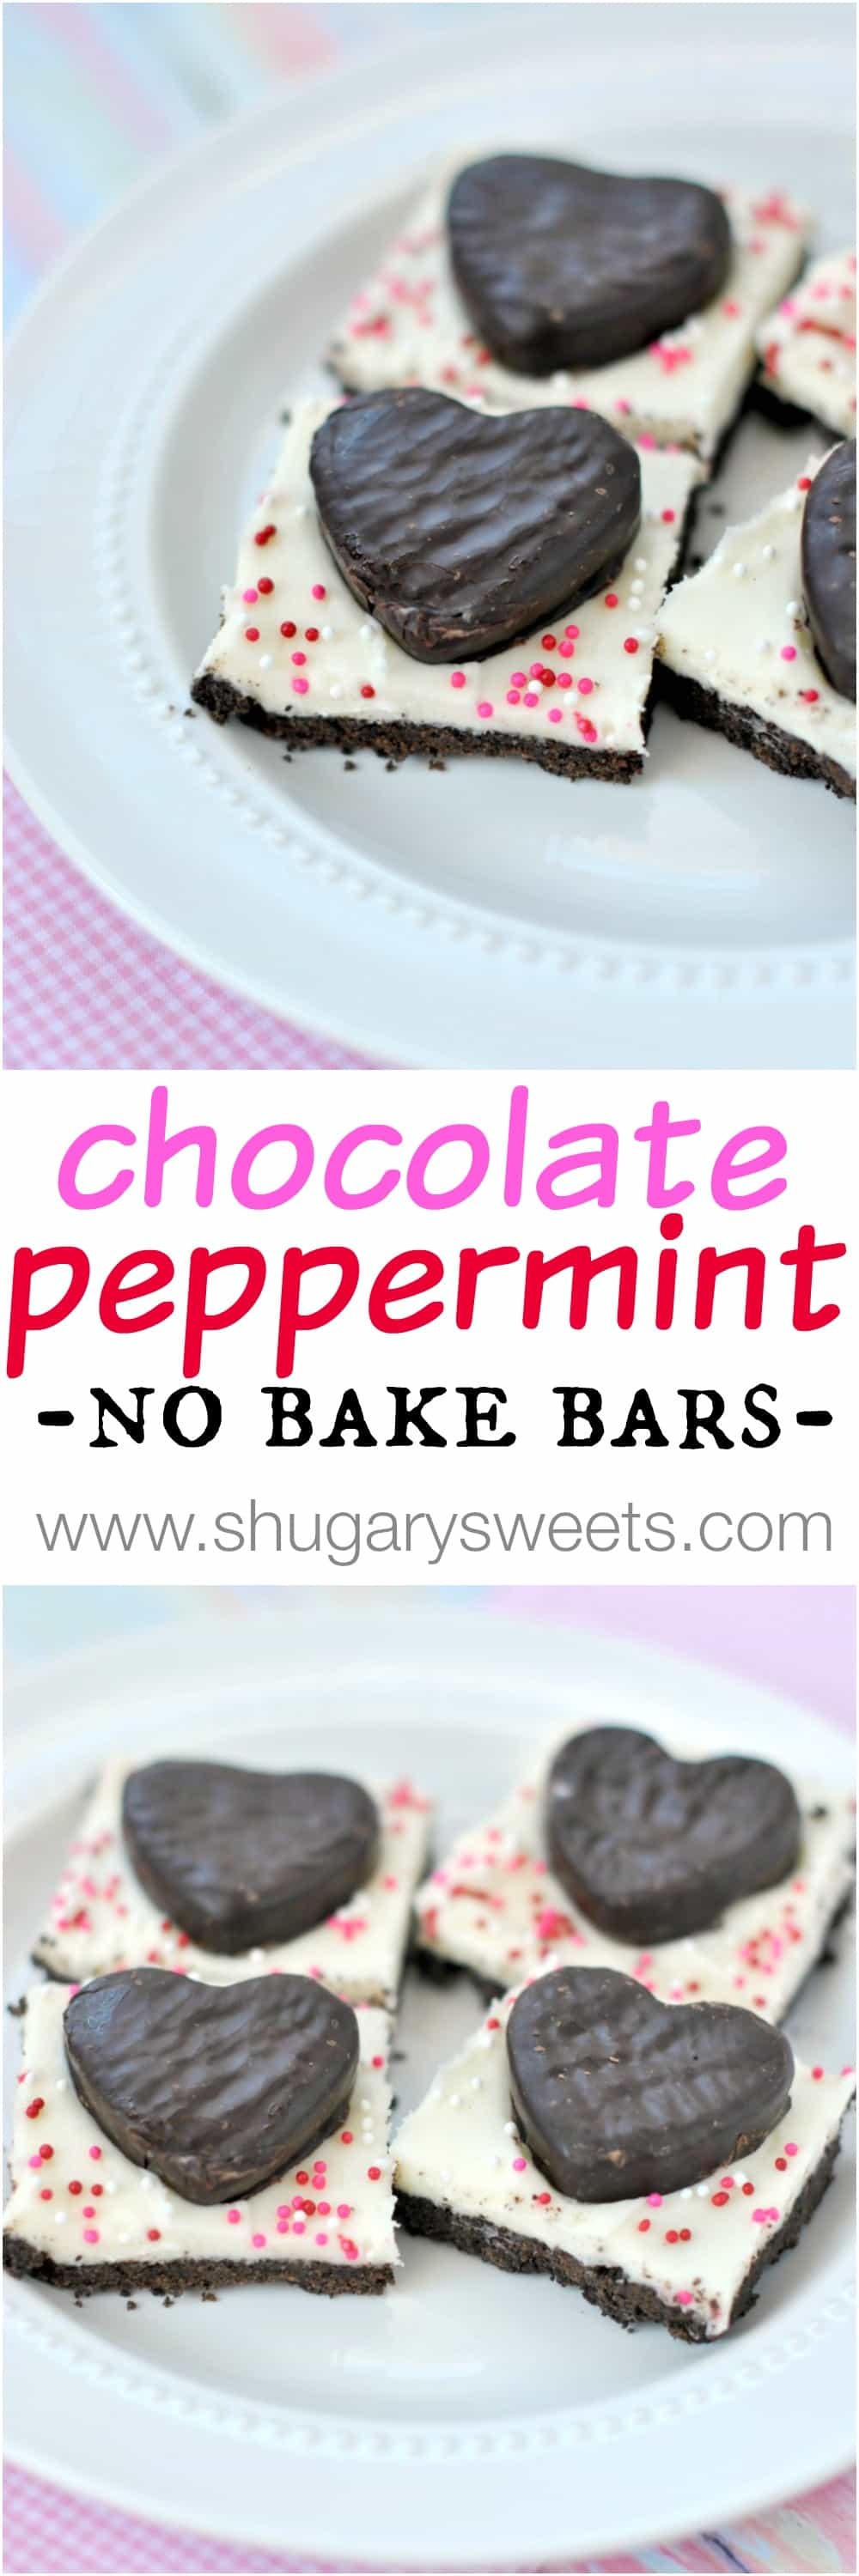 Easy, no bake, Chocolate Peppermint Bars are sure to be a hit as an ...